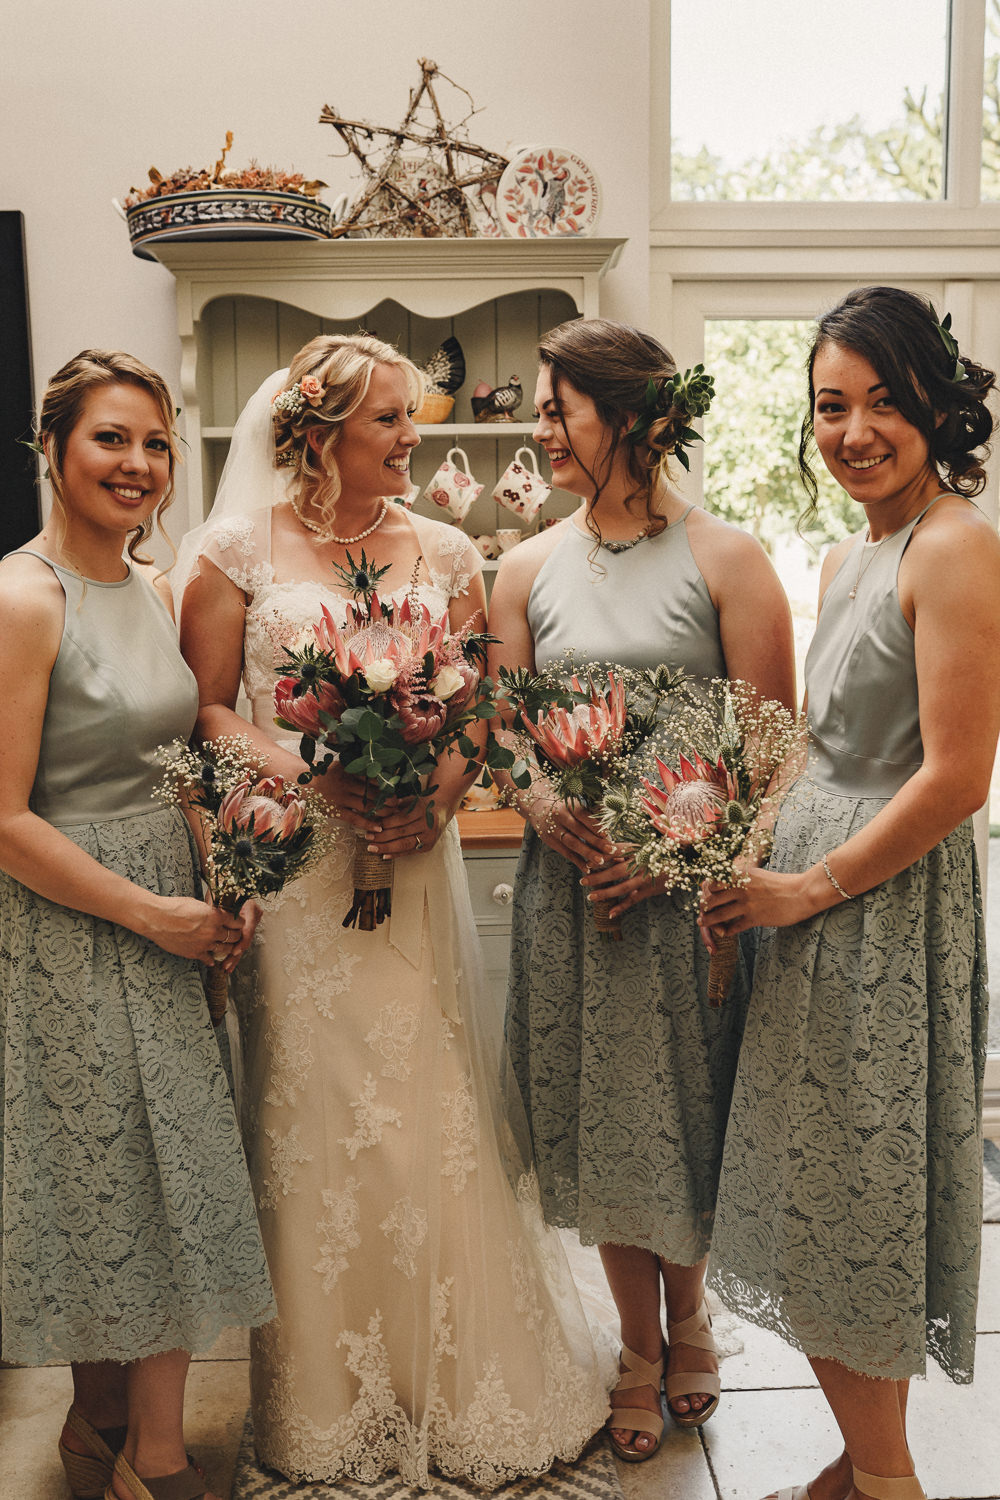 Bridesmaids Bridesmaid Dress Dresses Short Lace Sage Green Marquee Wedding Home The Chamberlins